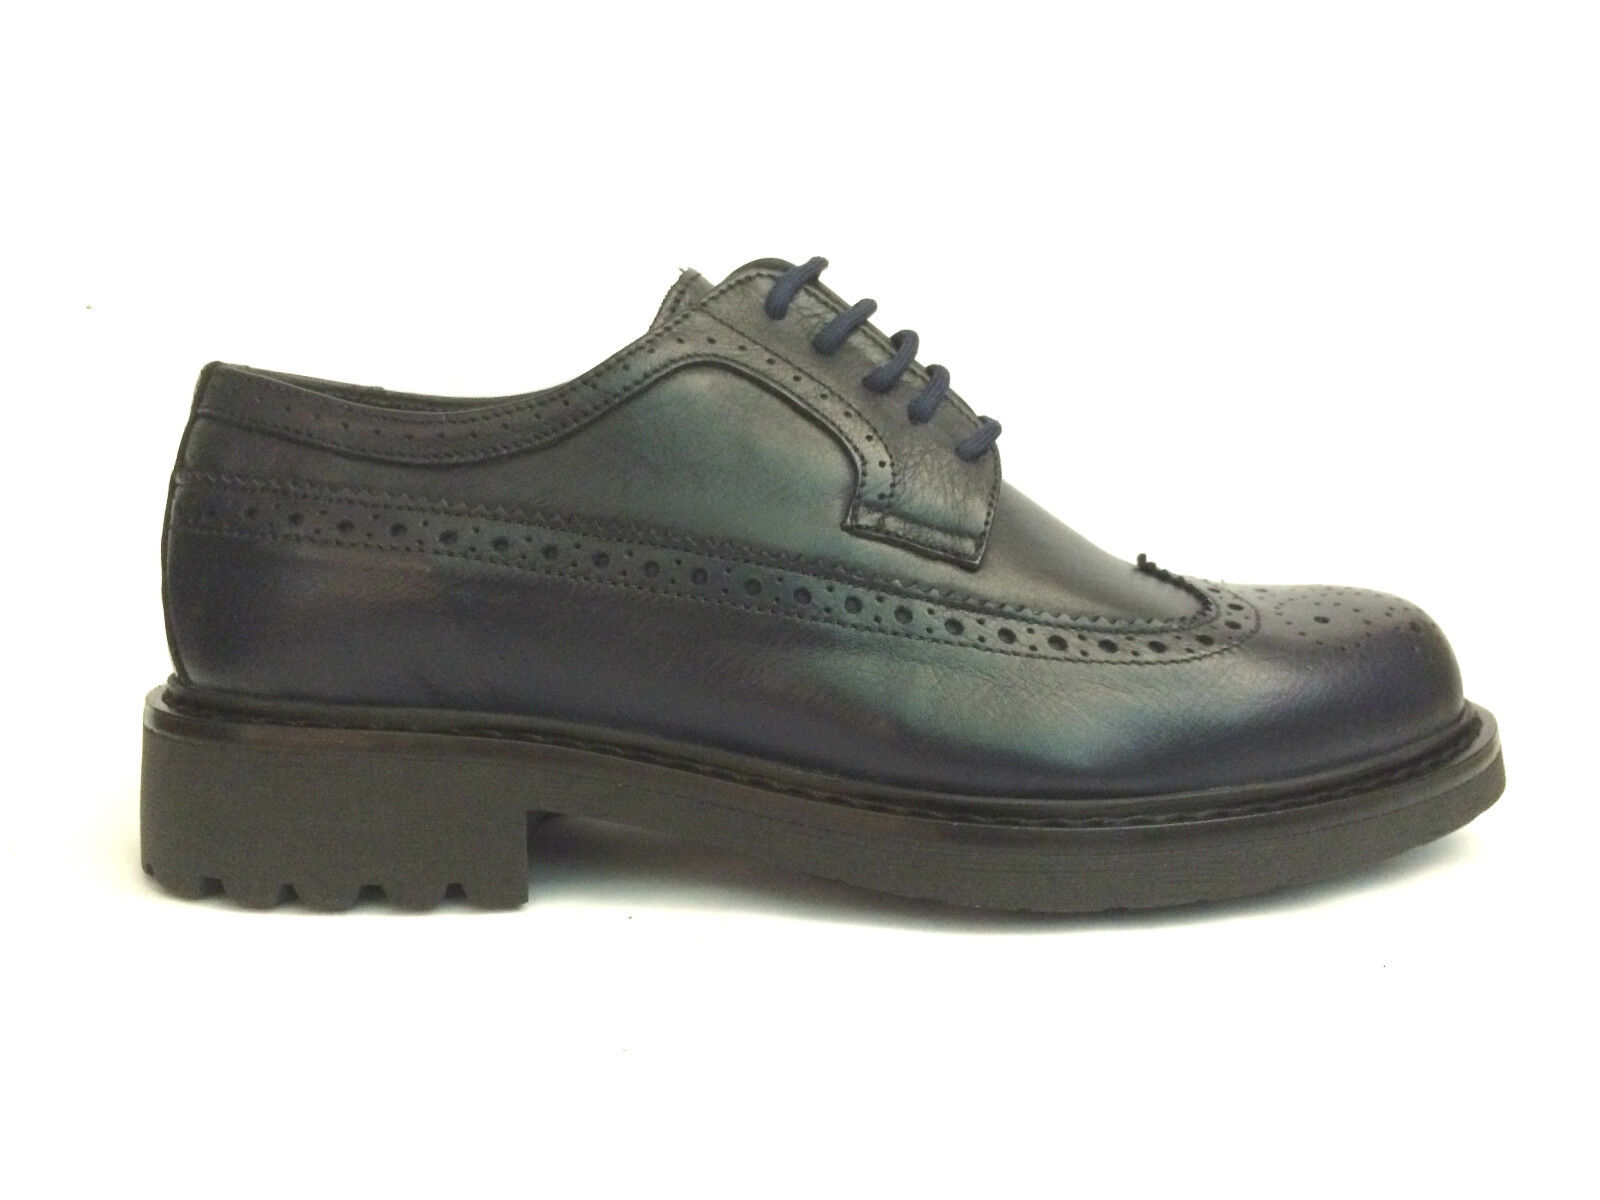 schuhe UOMO WEENCHESTER 2016/17 Schuhe STRINGATE INGLESE 4932 BLU A/I 2016/17 WEENCHESTER SCONTO 32% 740d4e